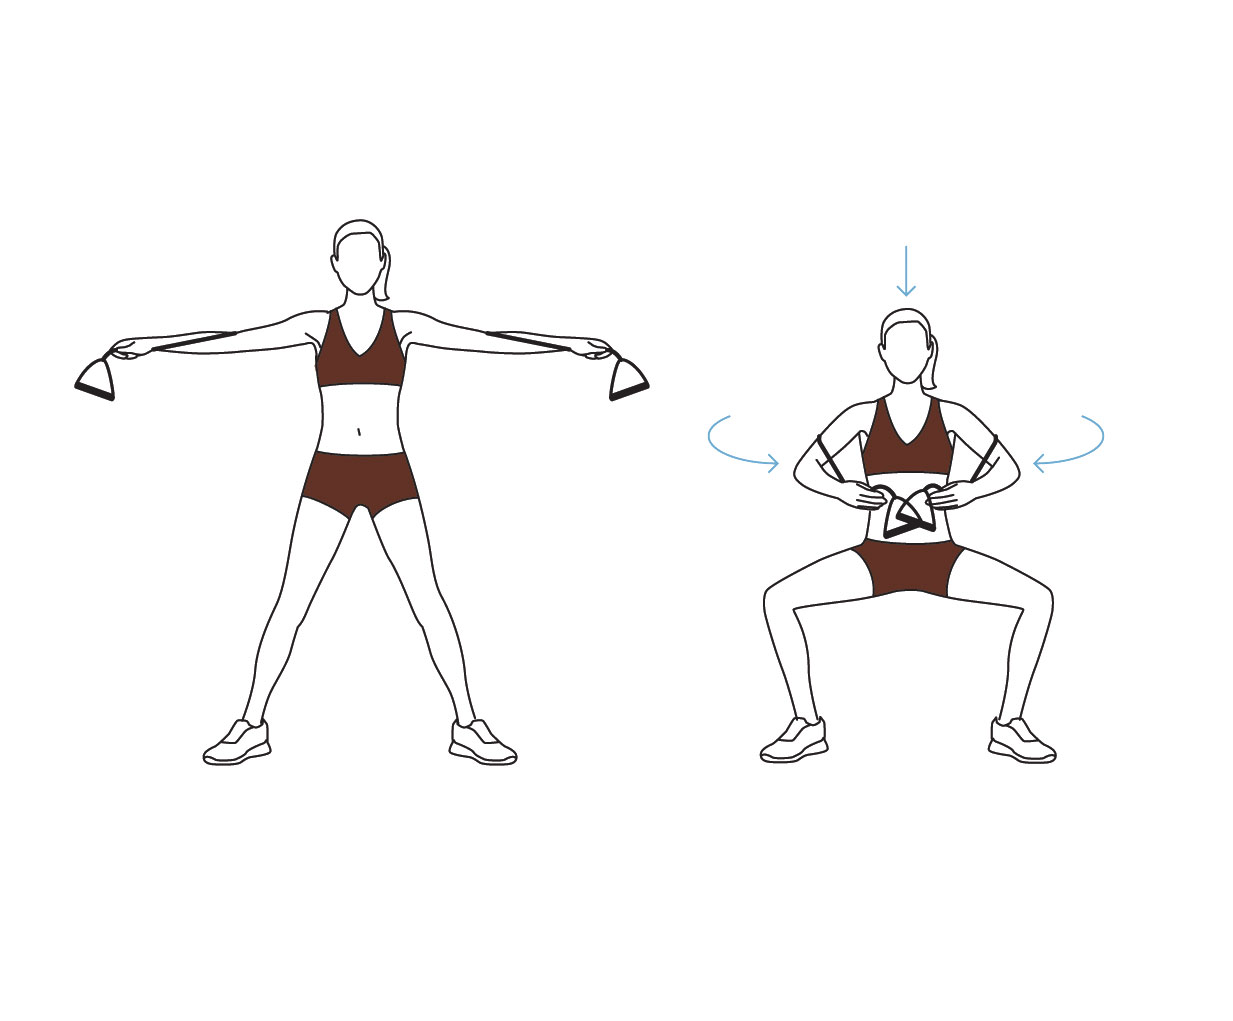 Resistance band workout exercises – arm and leg plie exercise